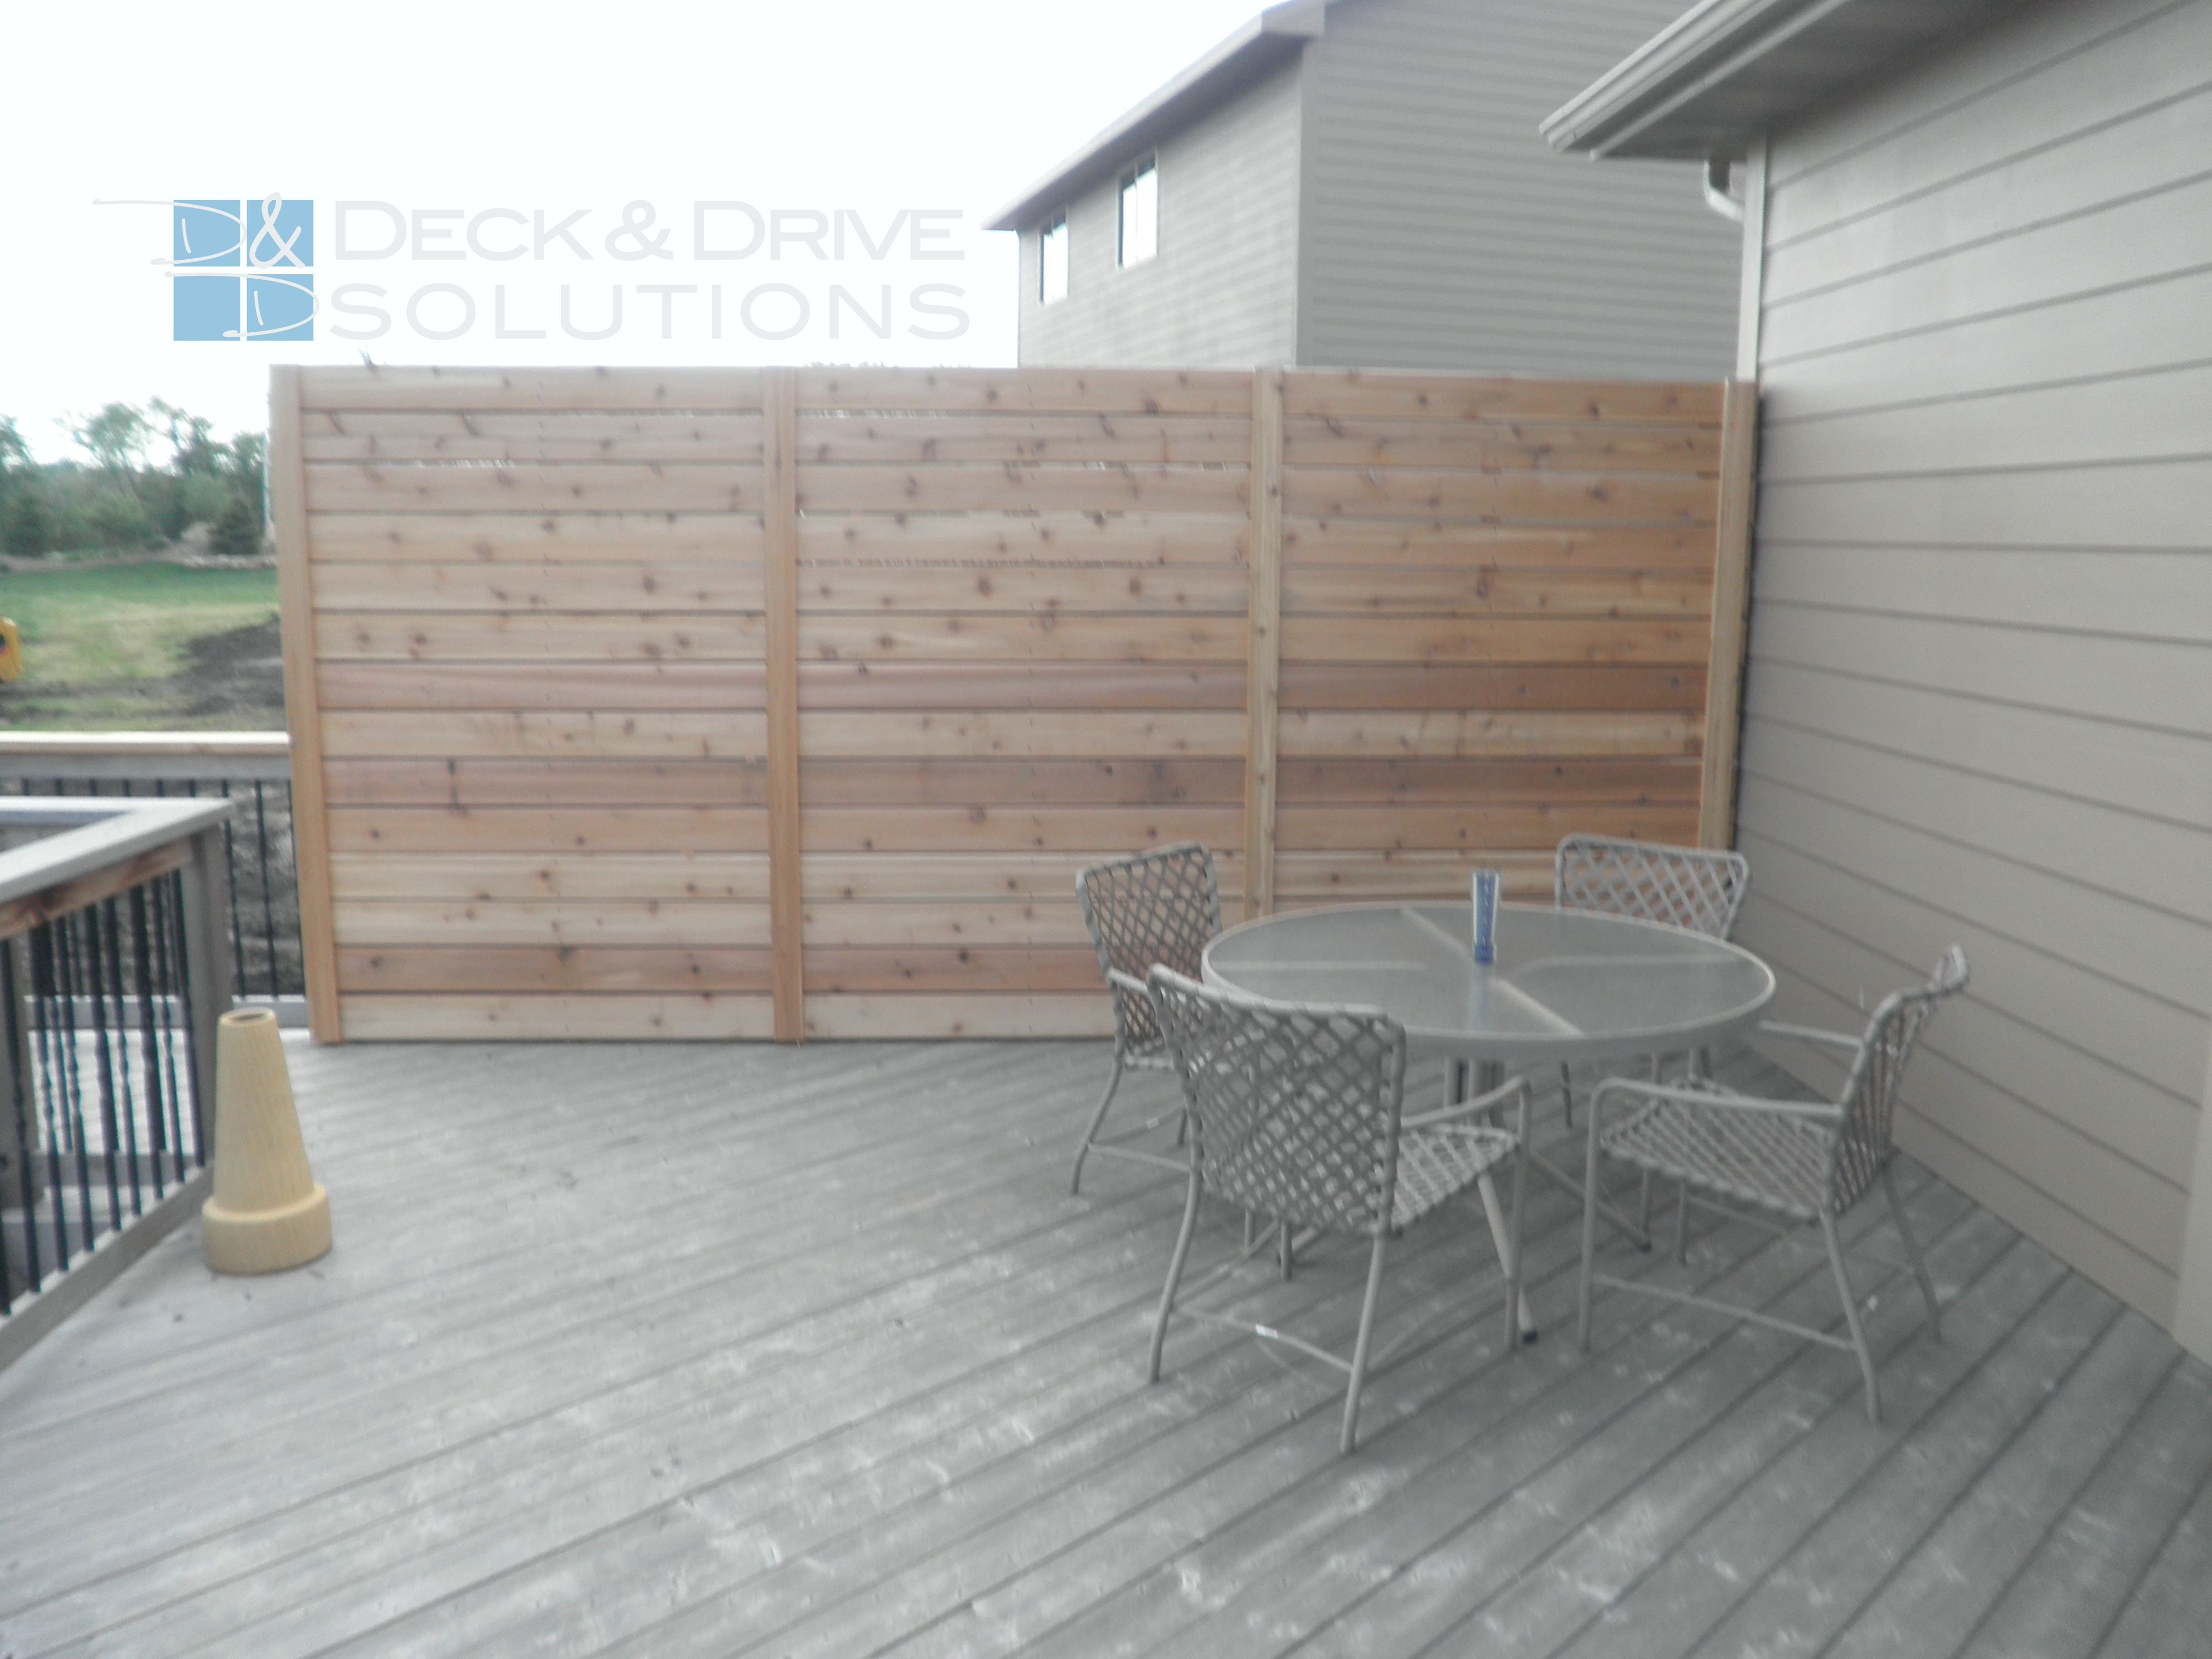 Patio privacy wall ideas - New Custom Privacy Wall On Deck Deck And Drive Solutions